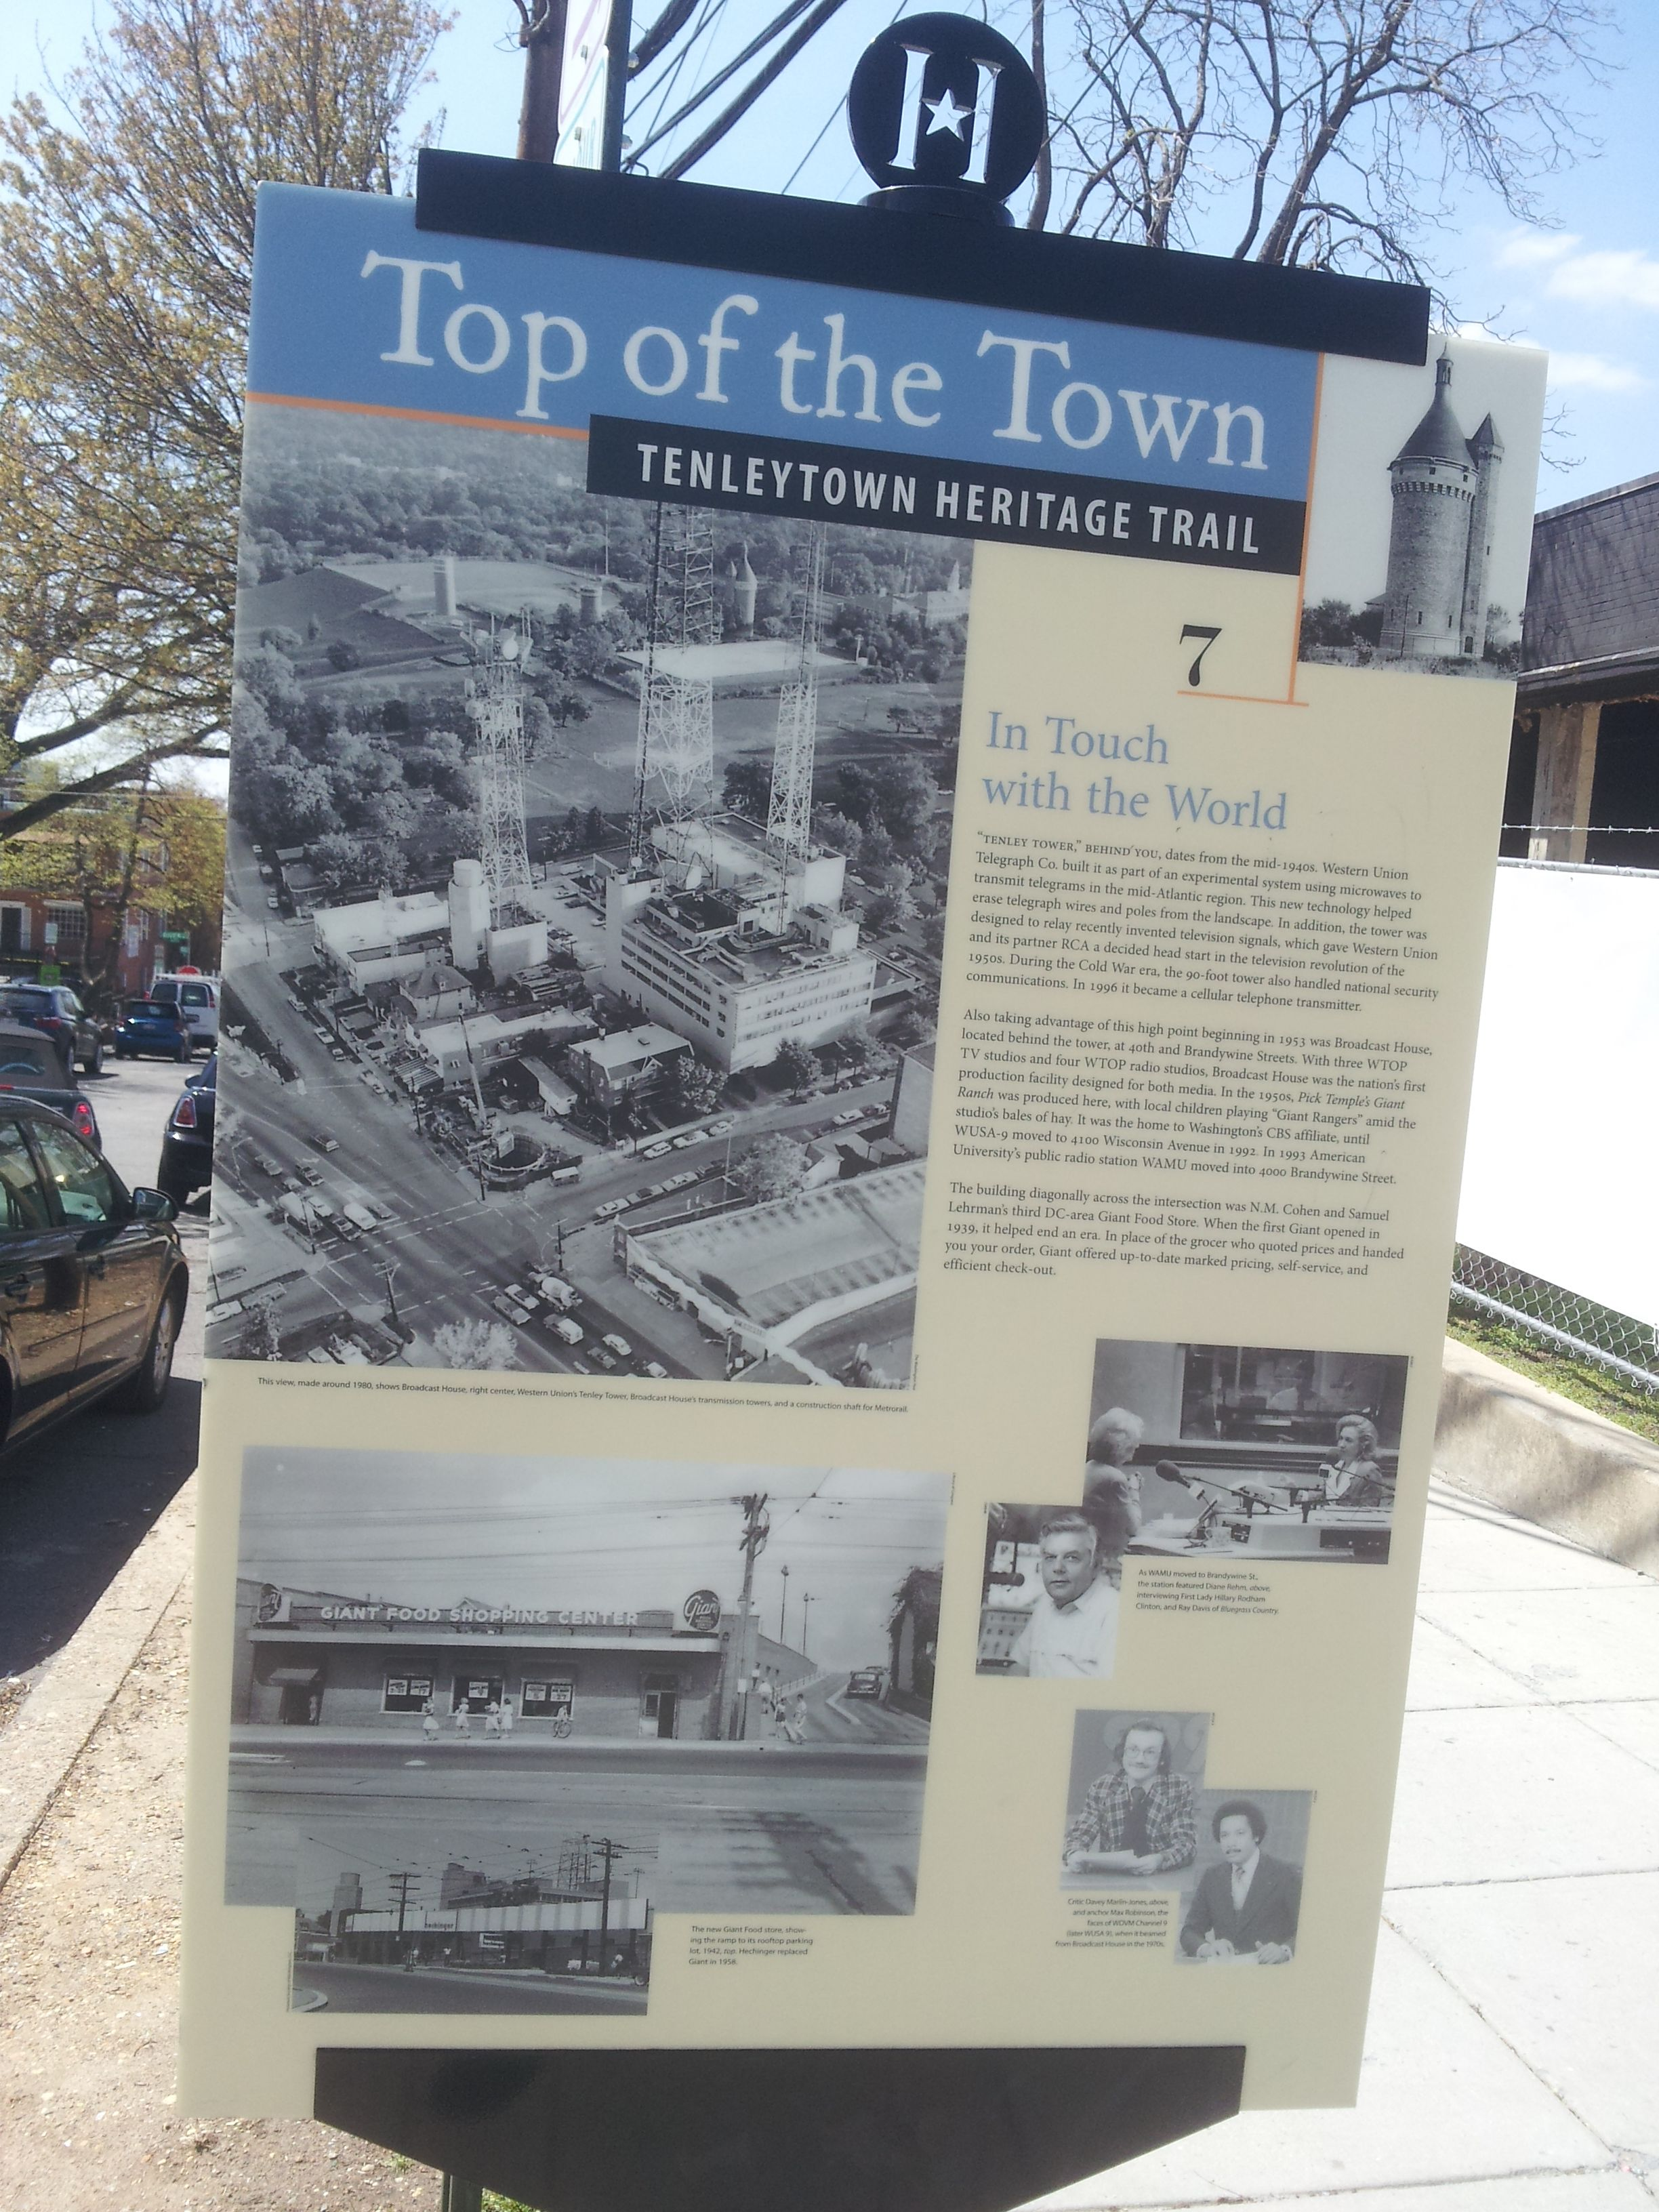 top of the town tenleytown heritage trail brief history of the top of the town tenleytown heritage trail highest point in dc used for